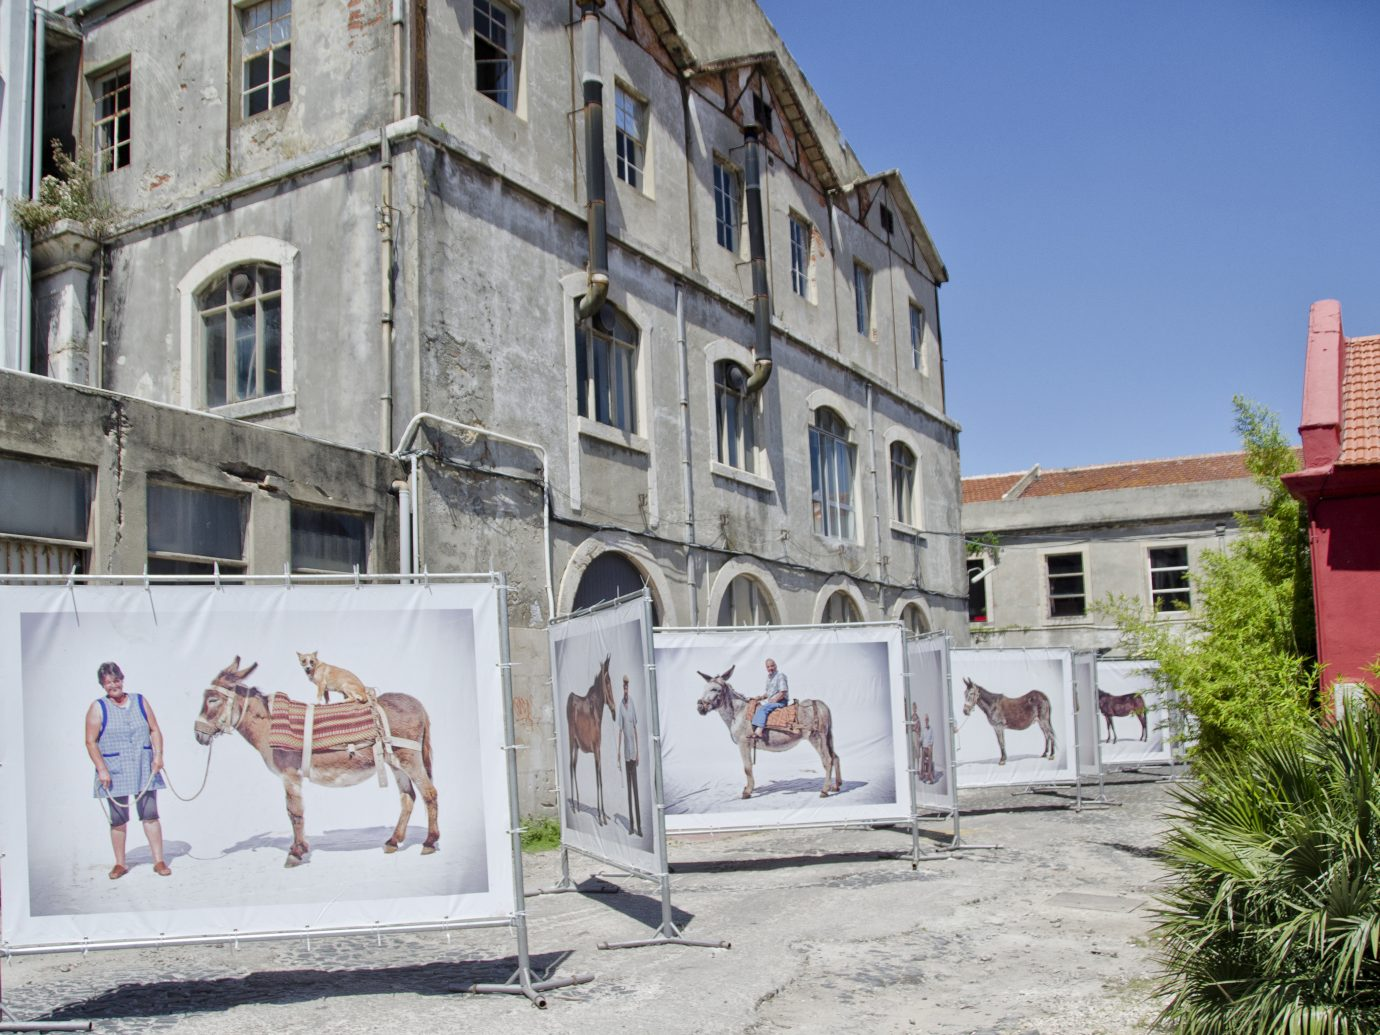 Open day at LX Factory with an outdoor art installation featuring large animals on white cloth